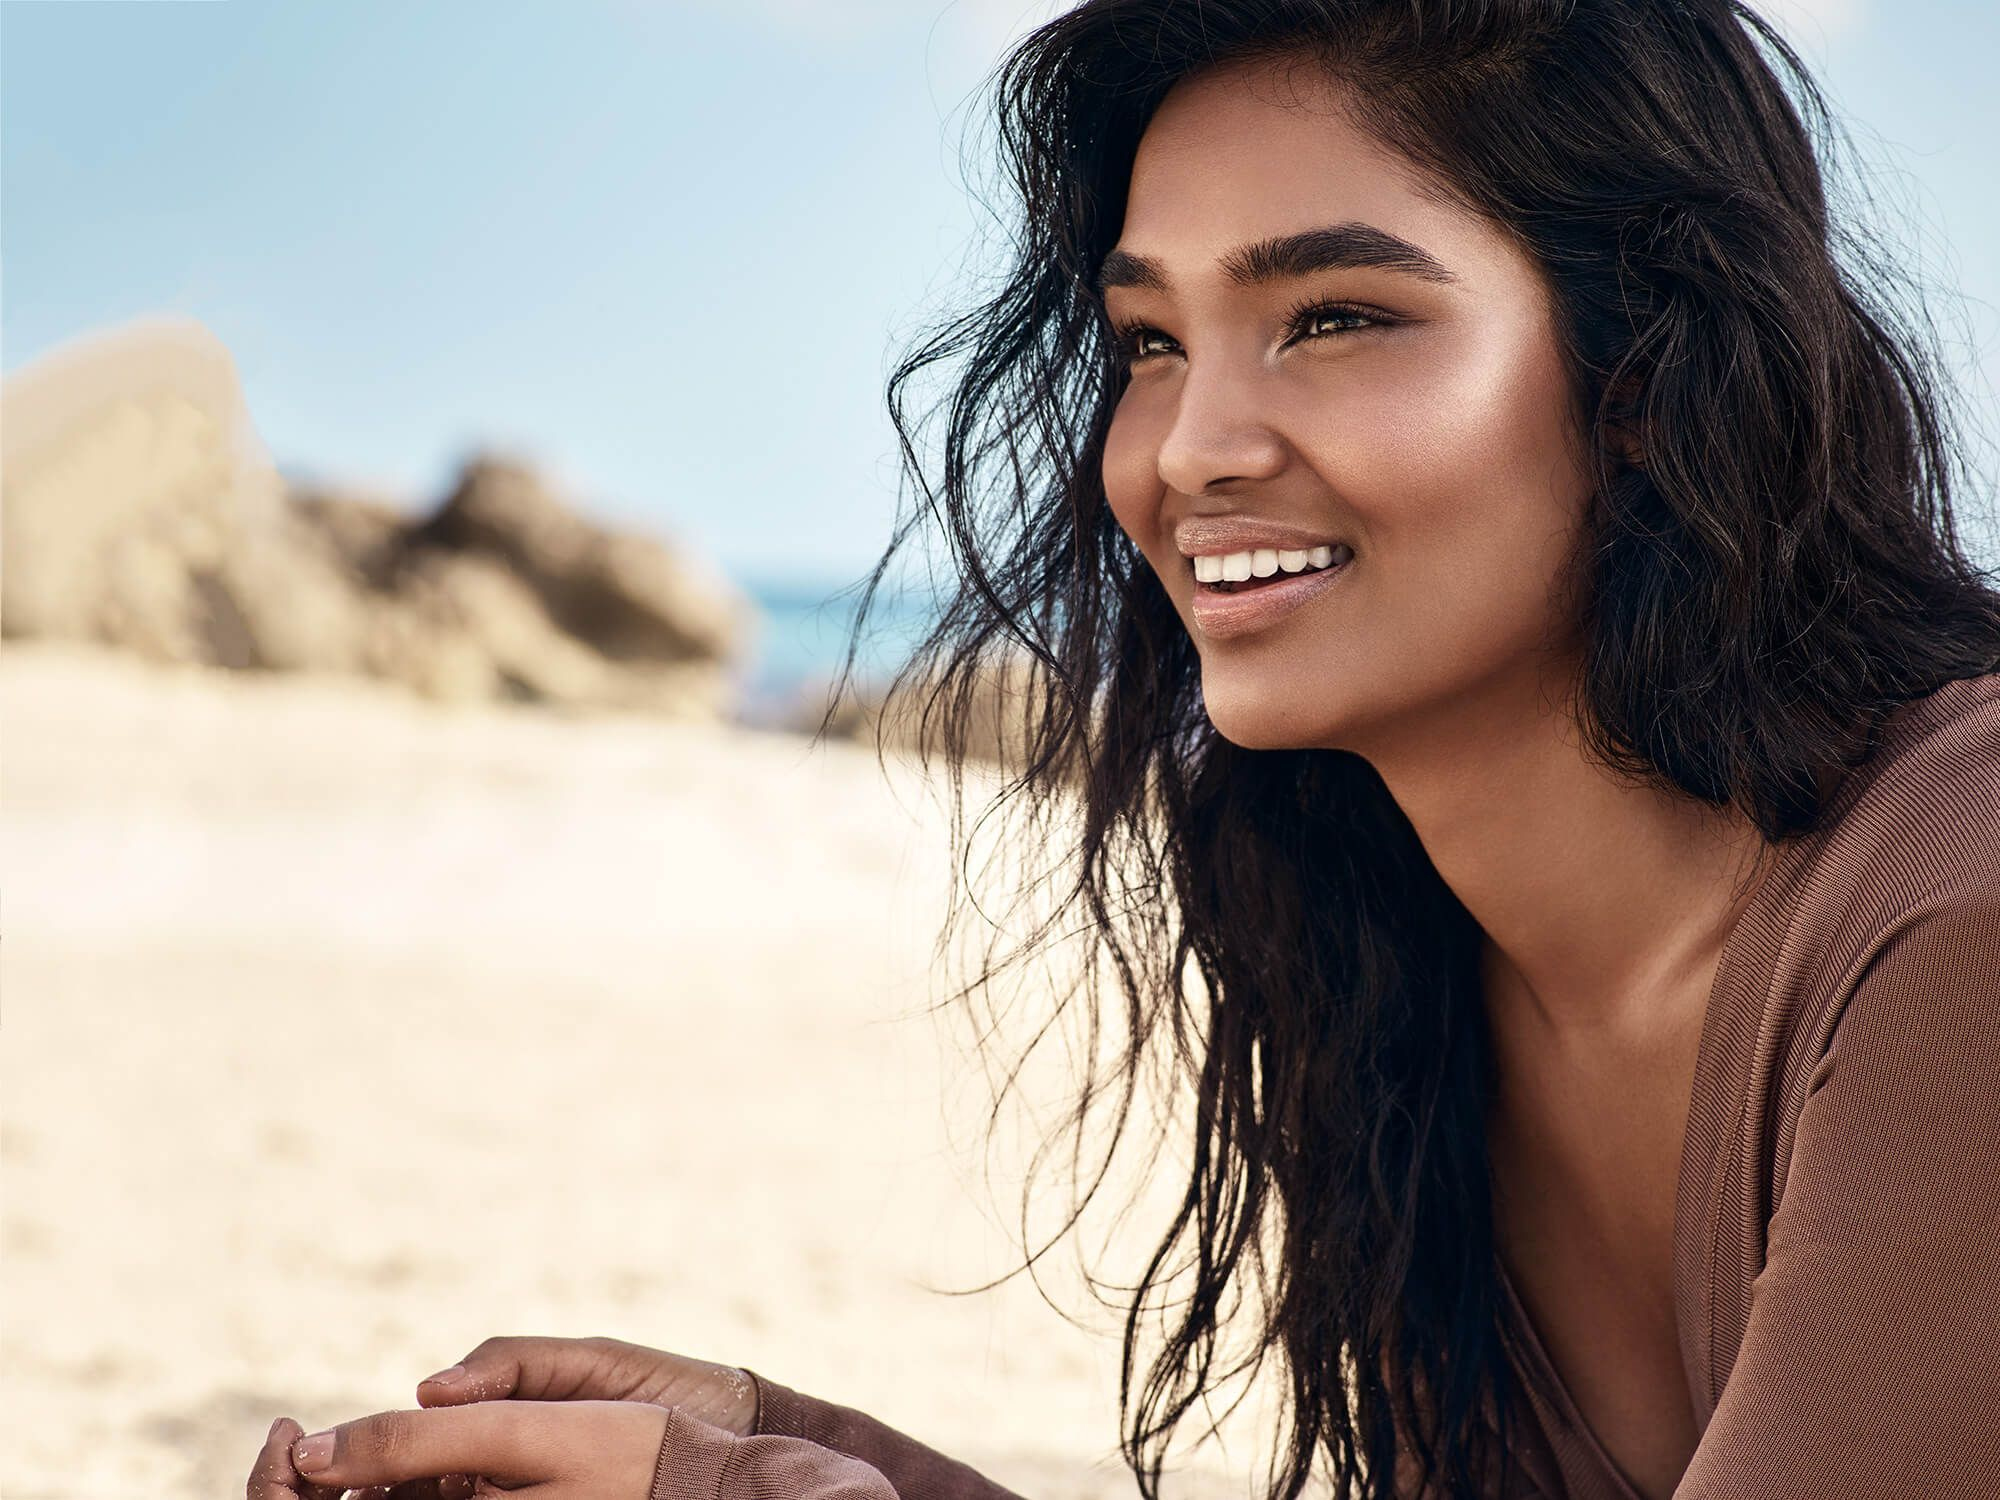 Model smiling on sandy beach